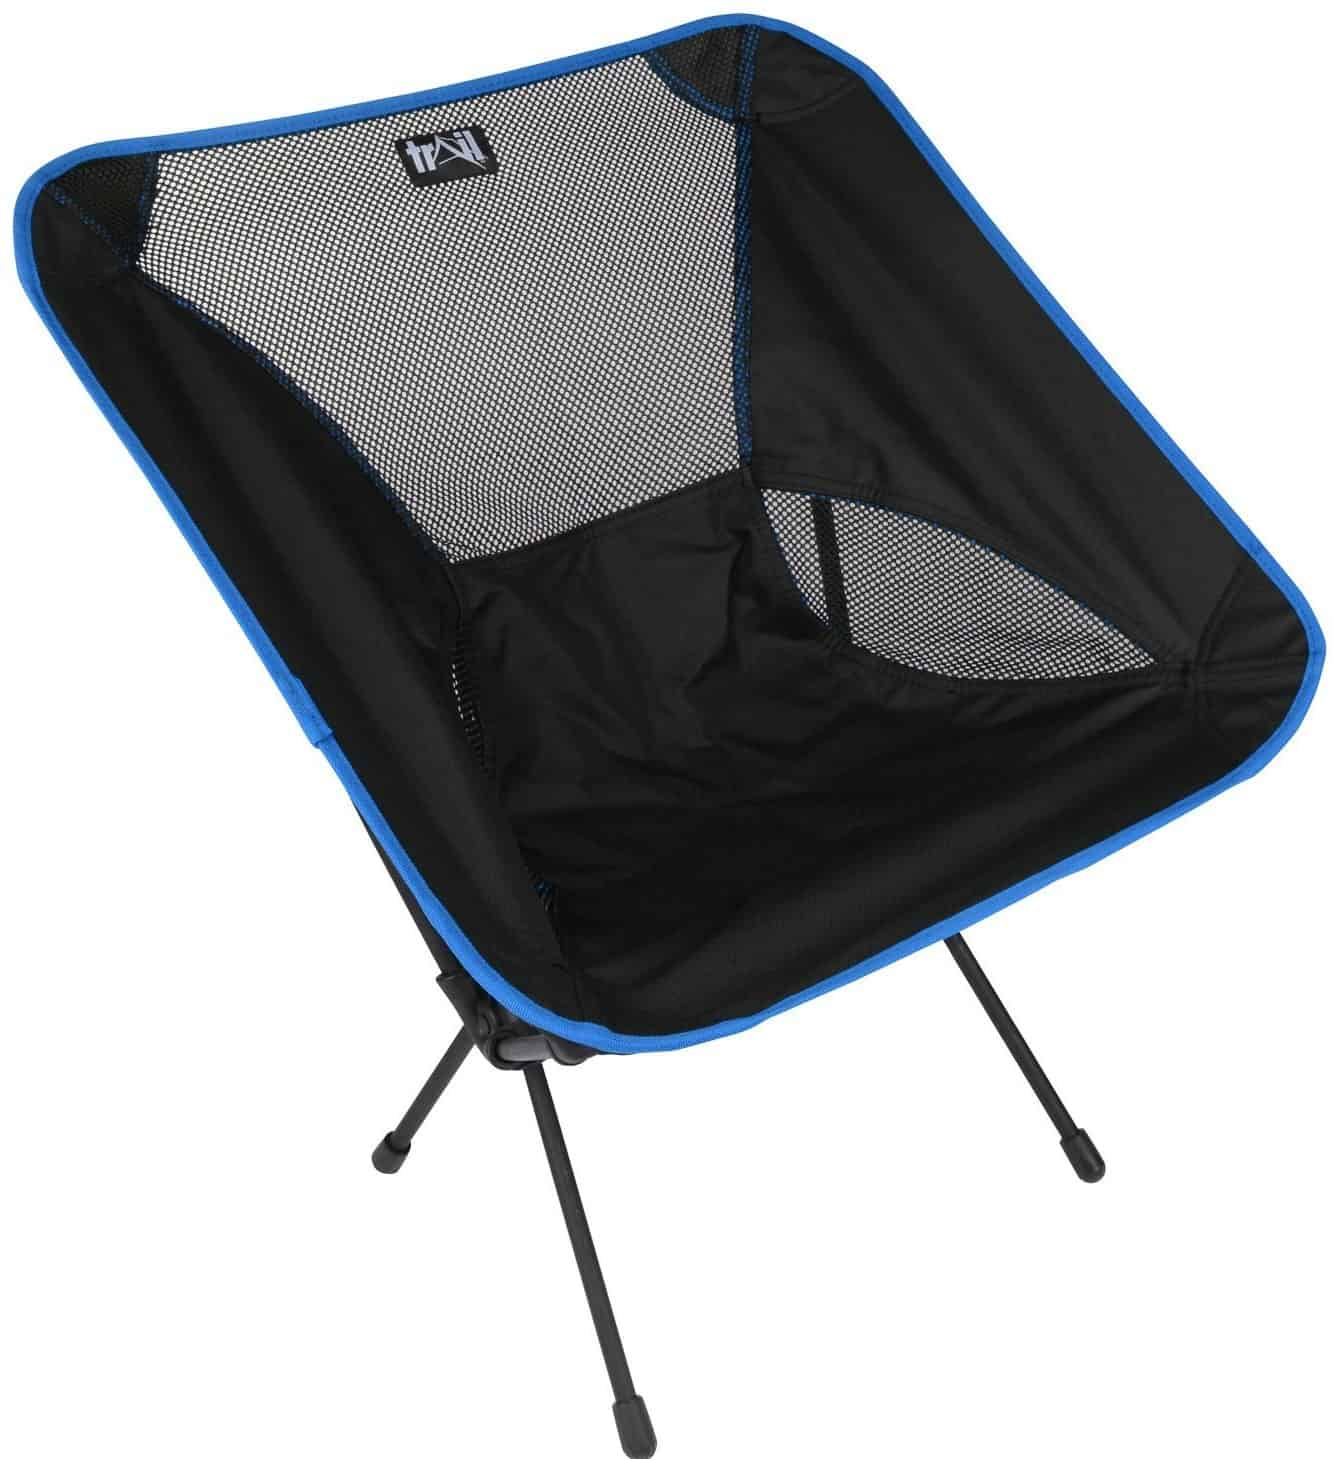 Best Lightweight Camping Chair – Trail